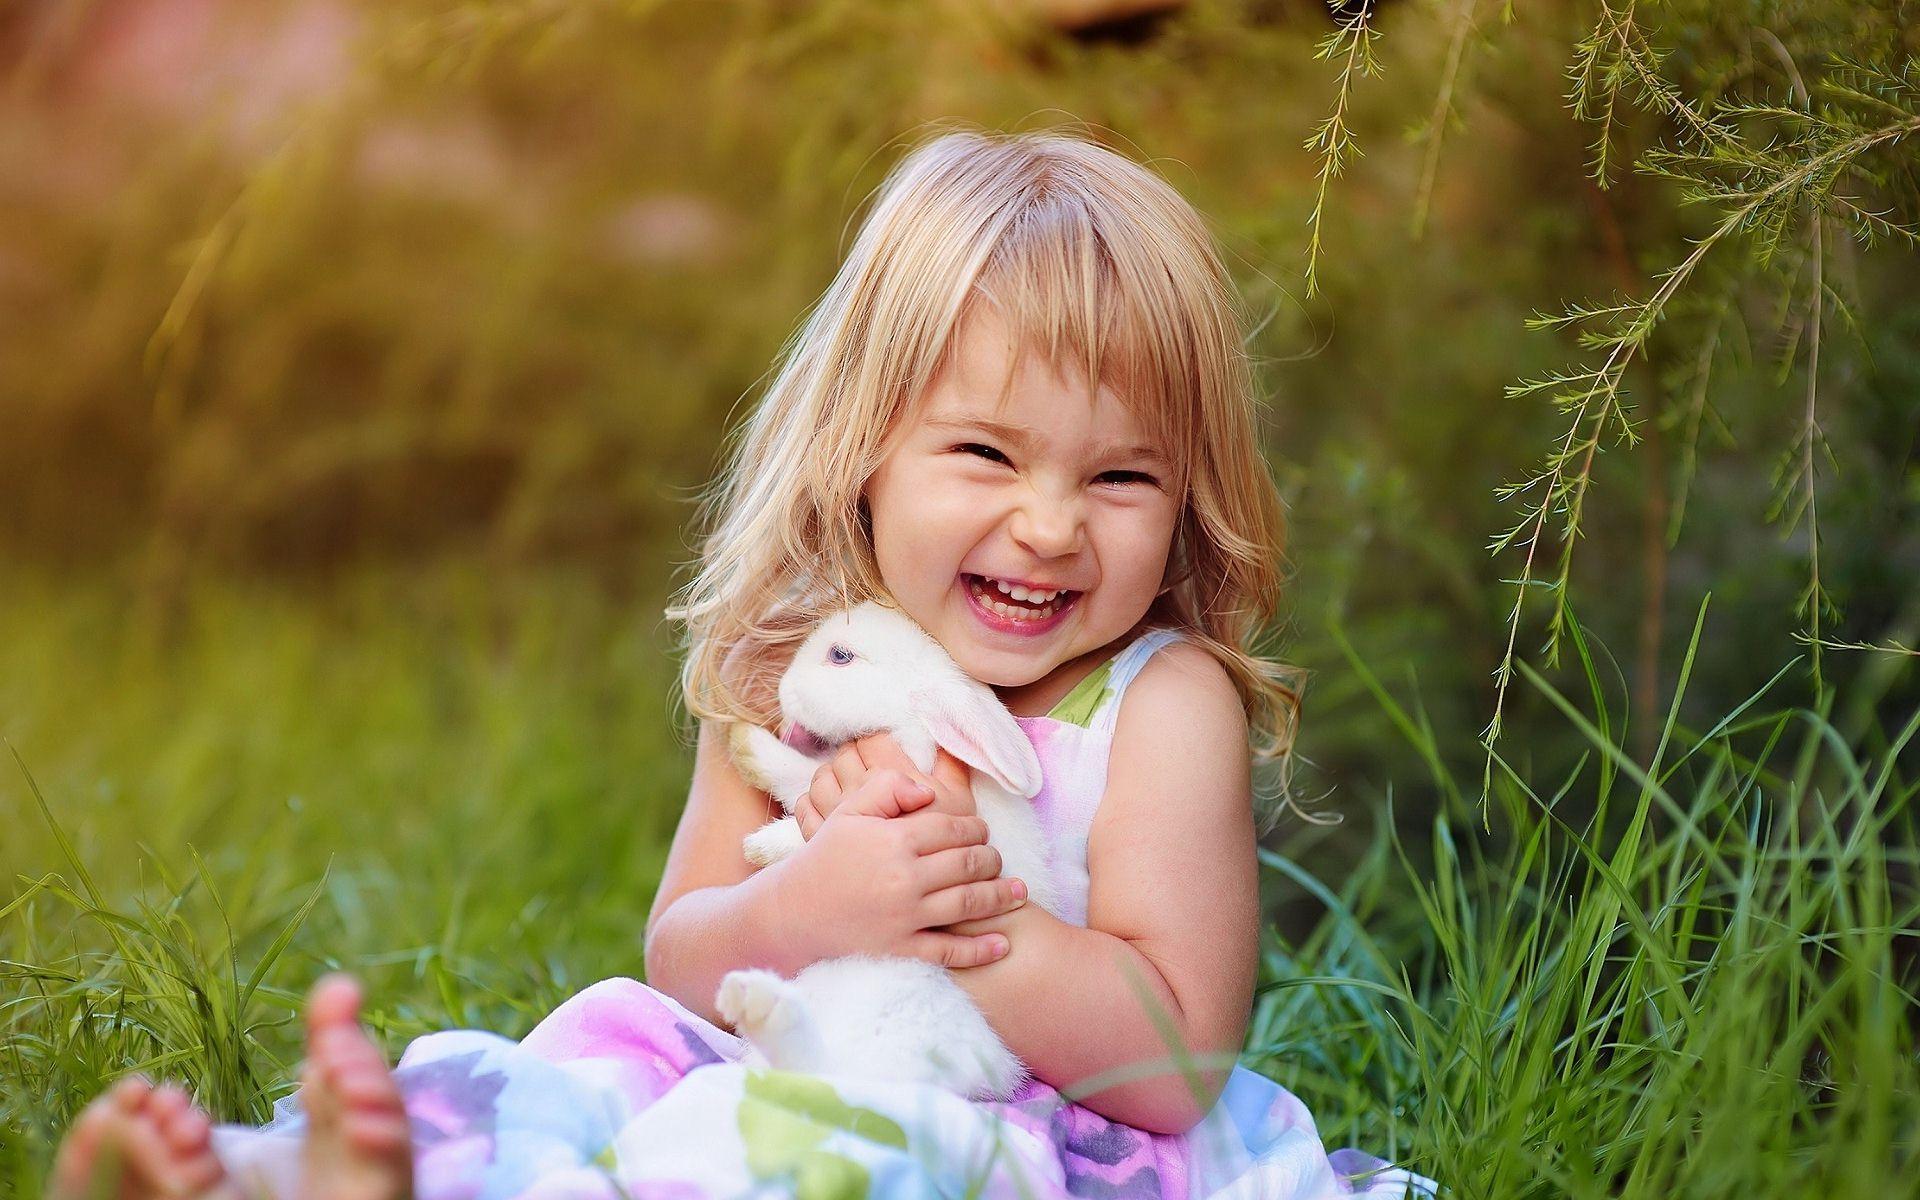 Cute Smiling Child Girl With Rabbit WallpaperImagesPicturesPhotosHD Wallpapers